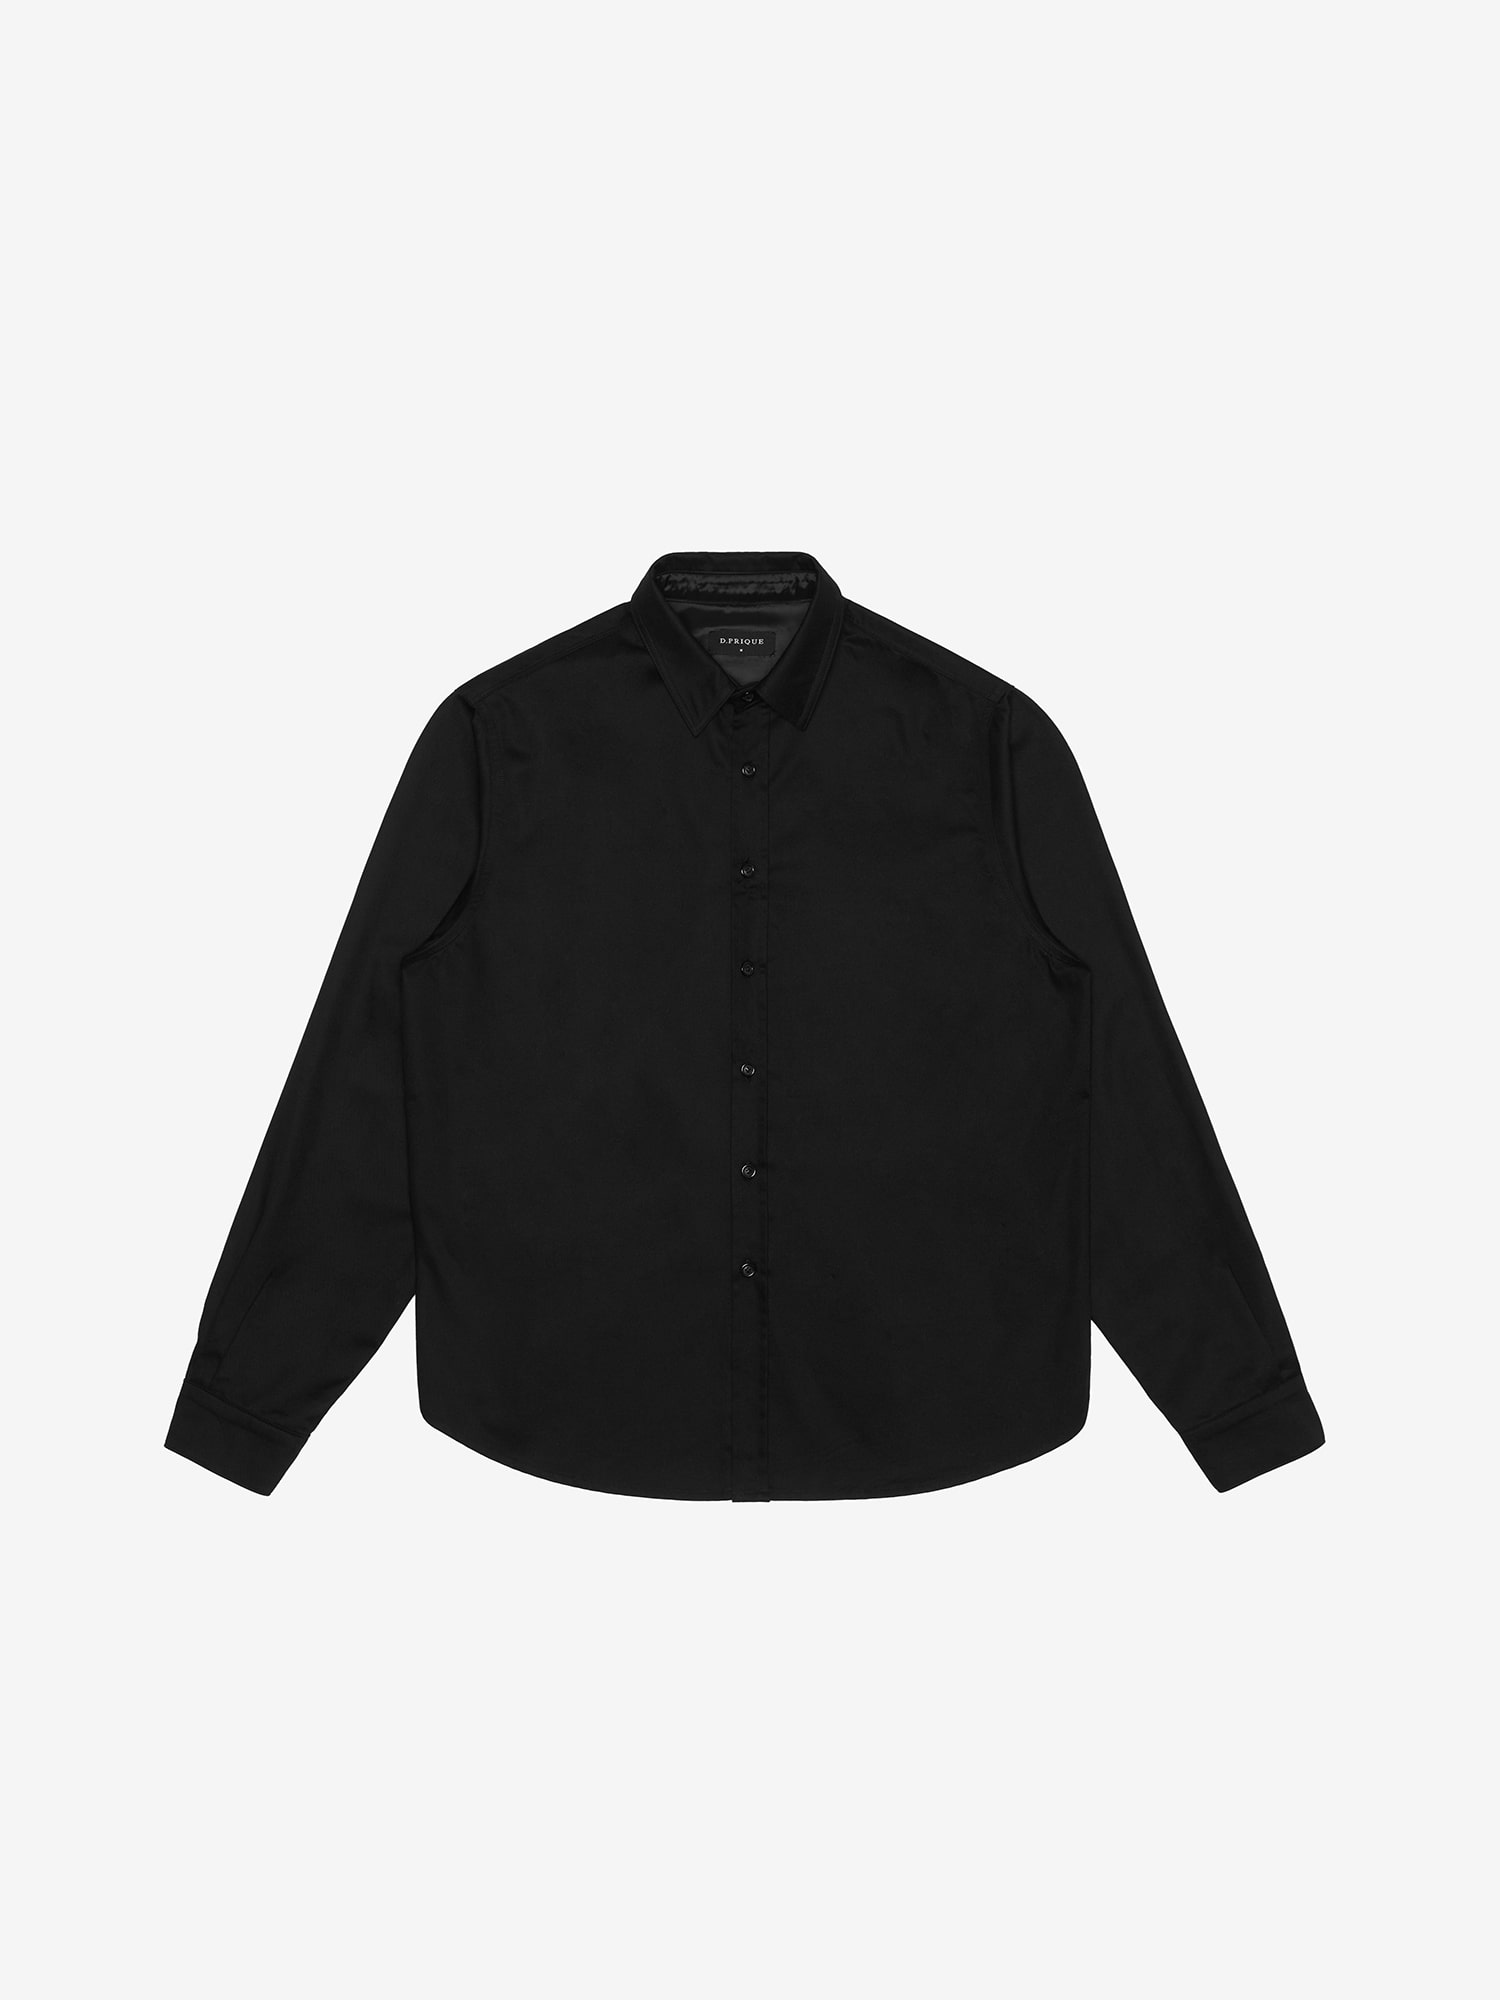 COTTON TWILL SHIRT - Black